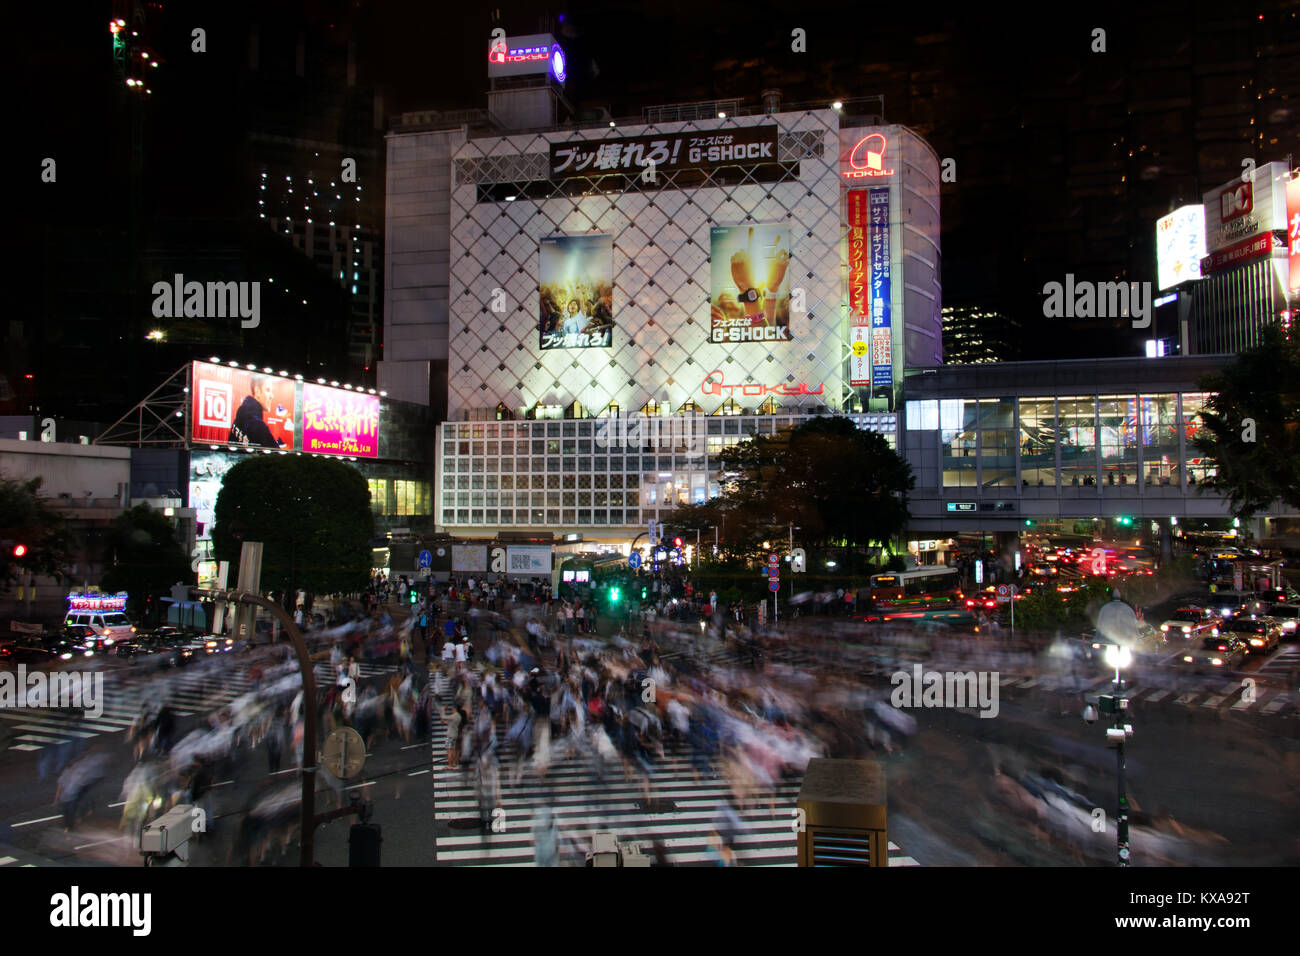 Japan Xxix Moving: Television Store Japan Stock Photos & Television Store